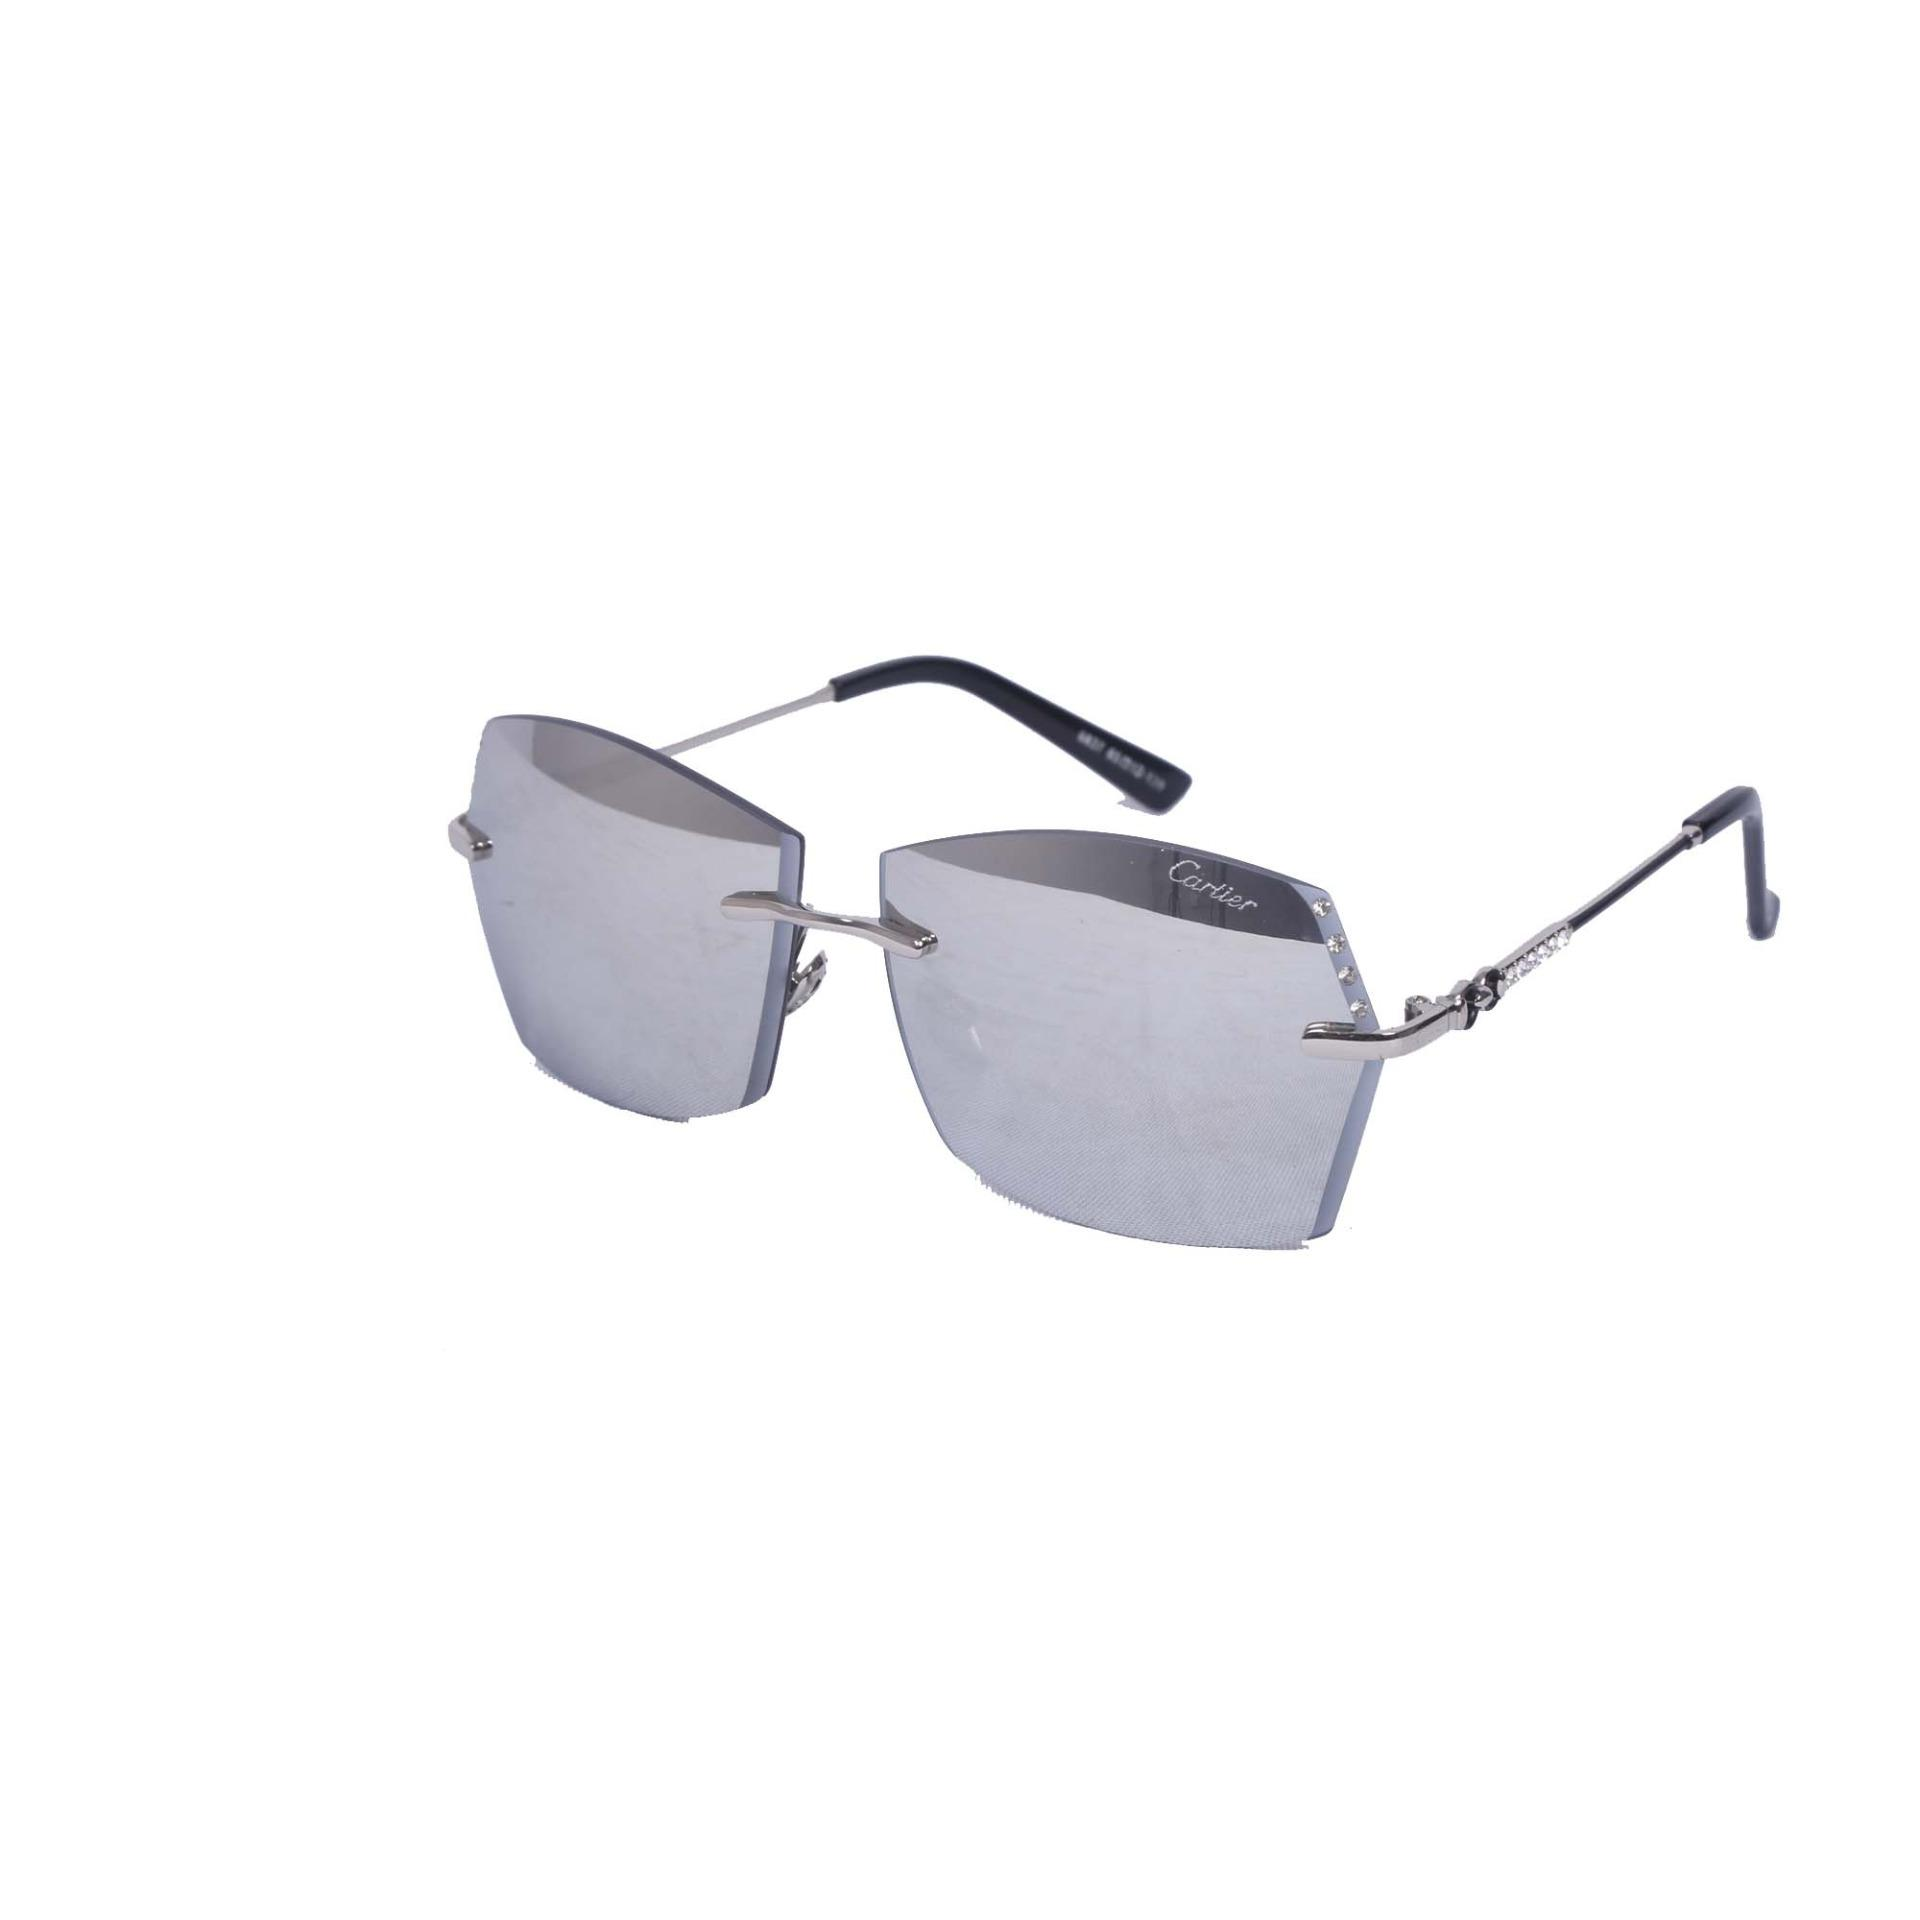 bd48e6070a87 Buy Maxjar Sunglasses 2 at Best Prices Online in Bangladesh - daraz ...